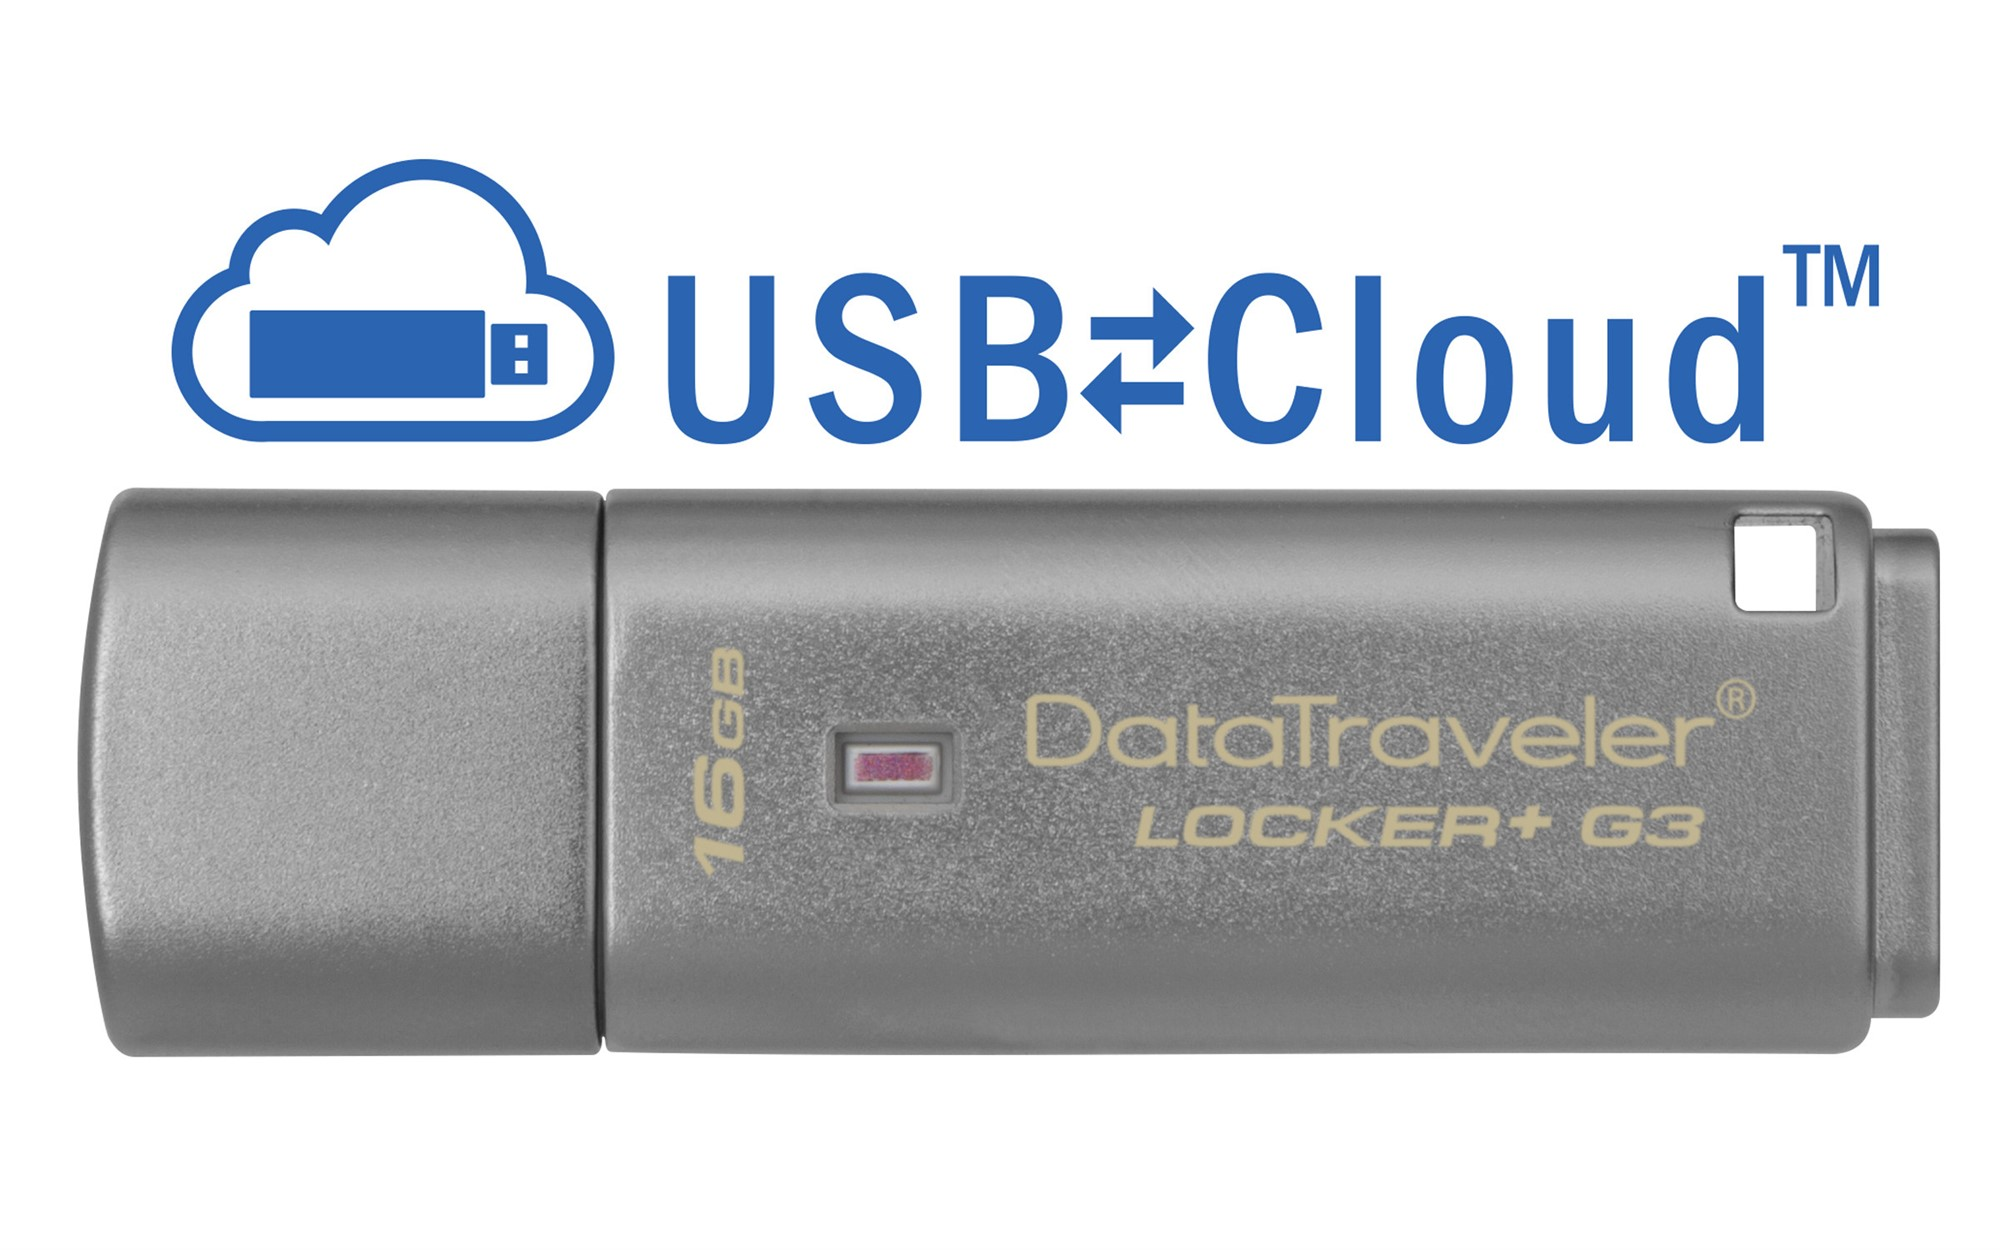 KINGSTON TECHNOLOGY DATATRAVELER LOCKER+ G3 16GB USB 3.0 (3.1 GEN 1) TYPE-A CONNECTOR SILVER FLASH DRIVE